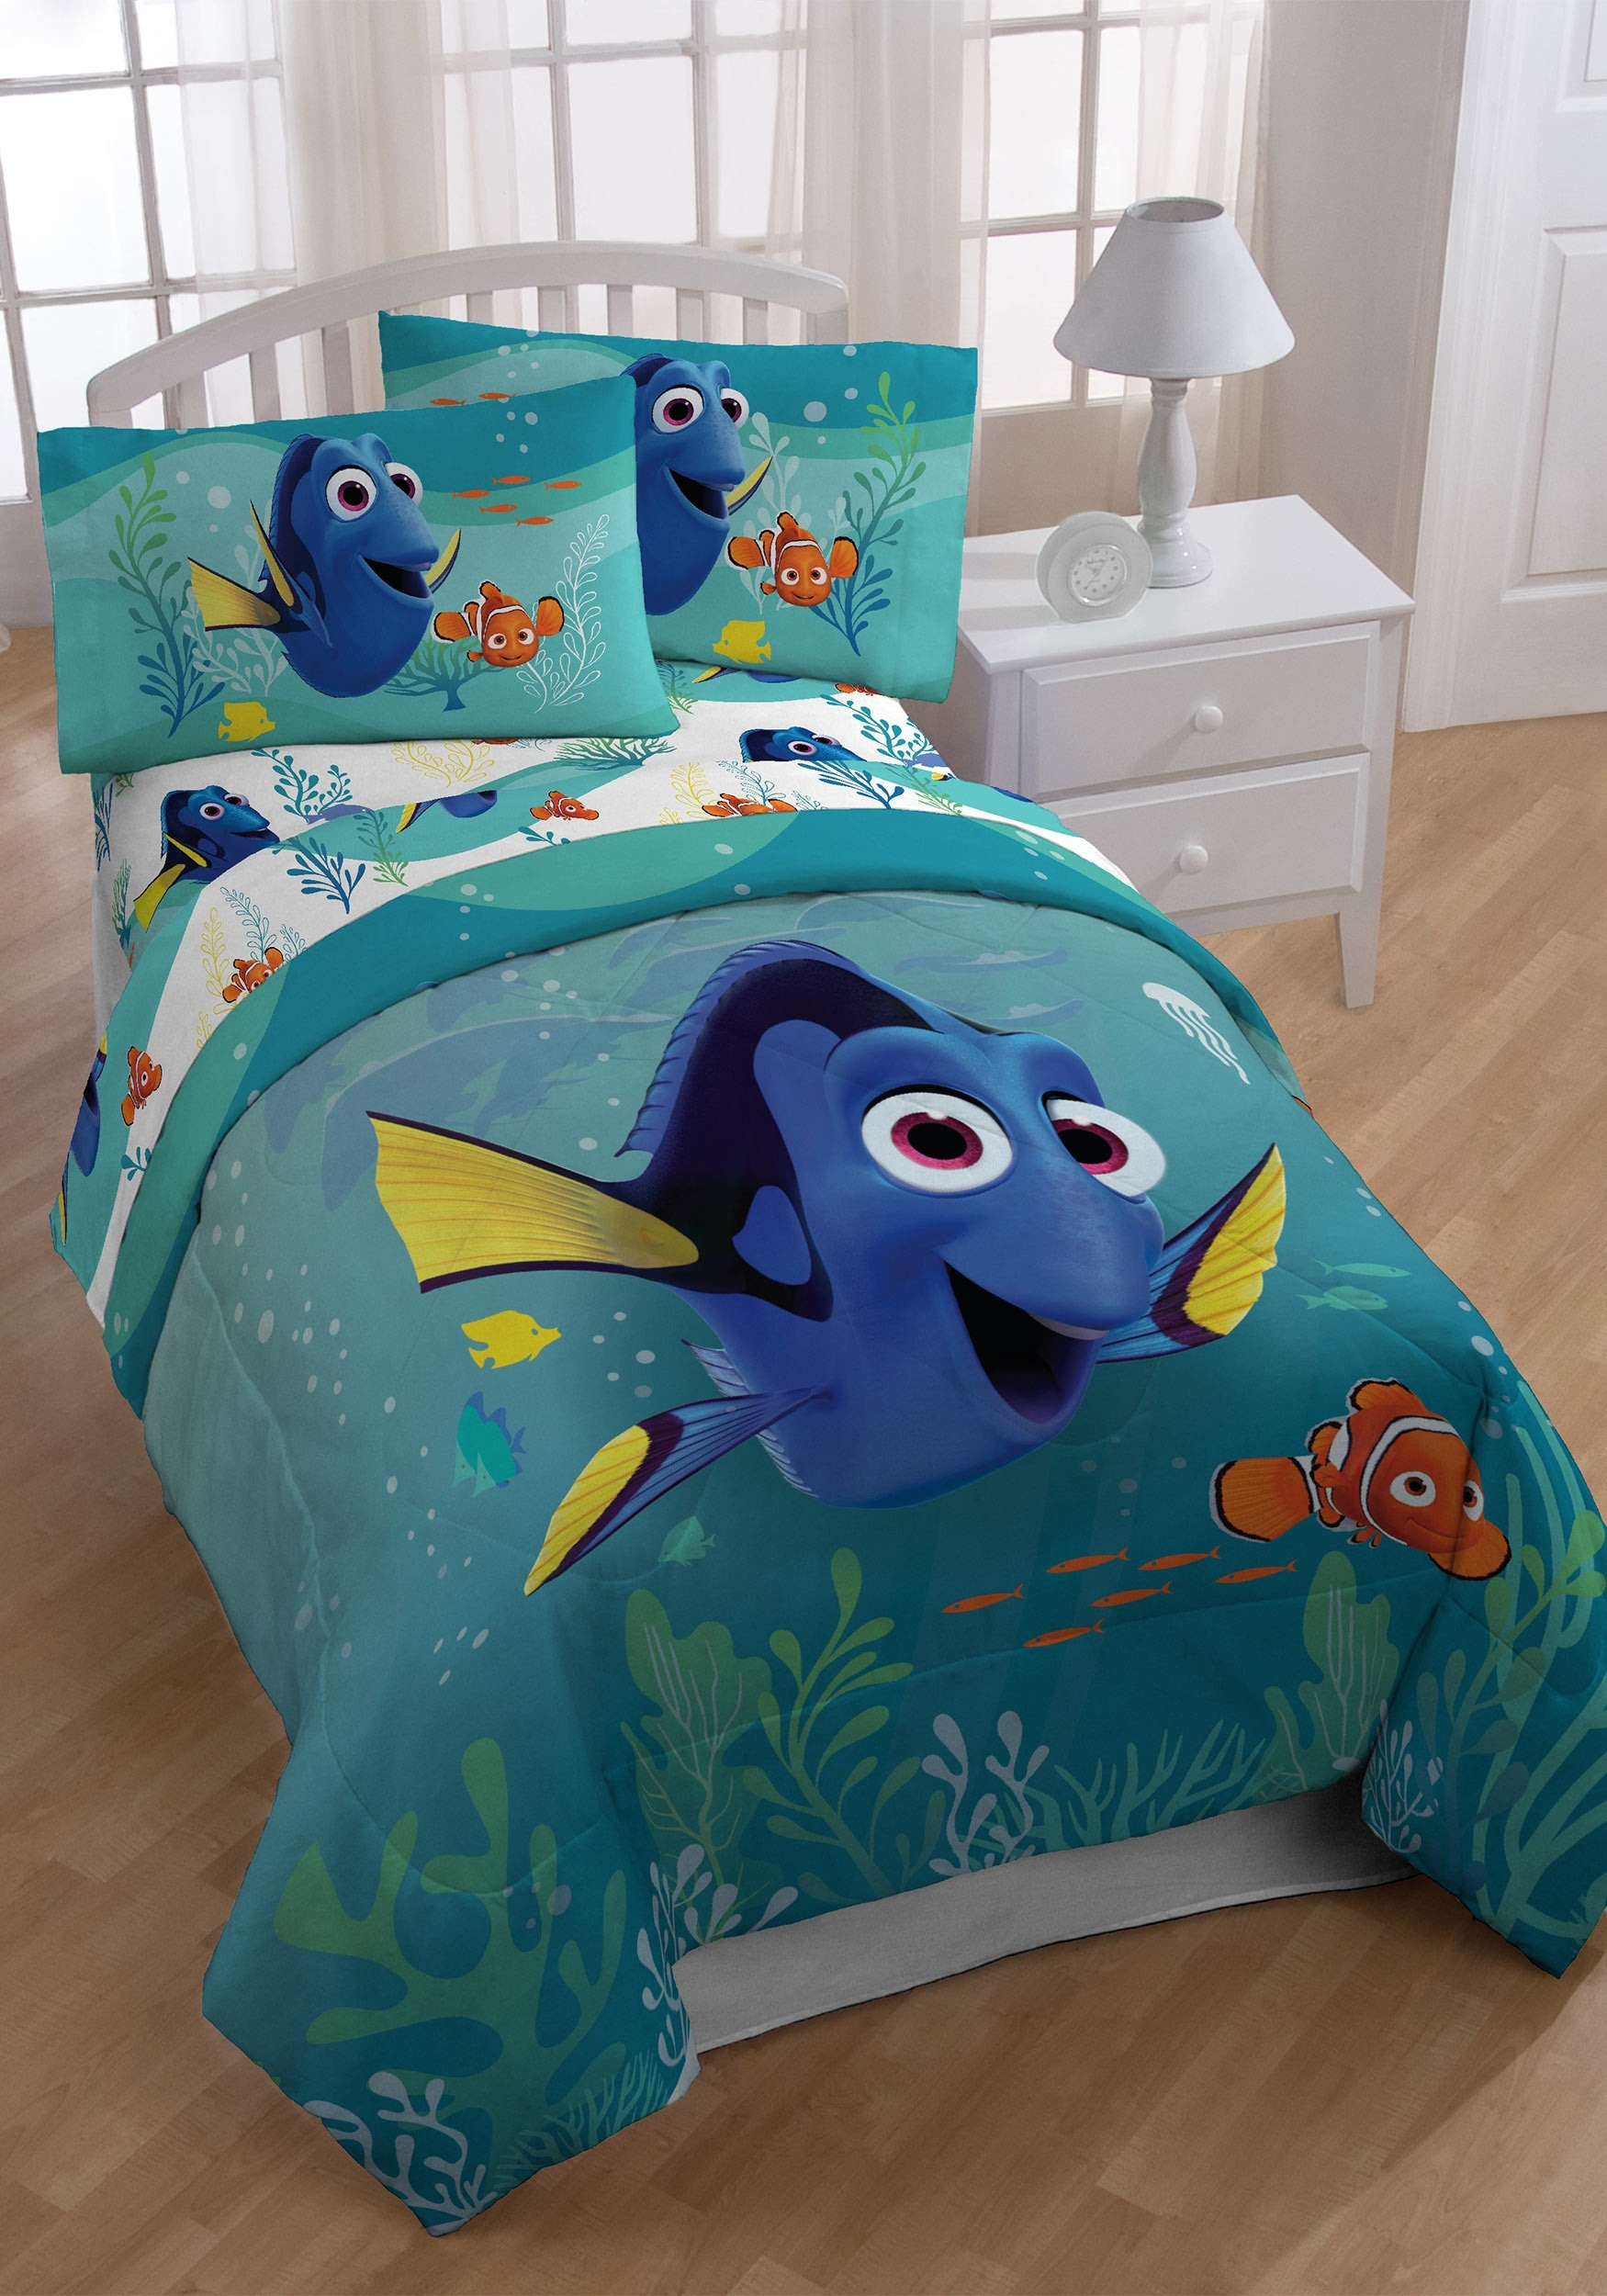 sets concept disney of full sheets blue mermaid in surprising amazonavengers set comforter ariel size princess bedding avengers sports toddler piece little images setdisney bag